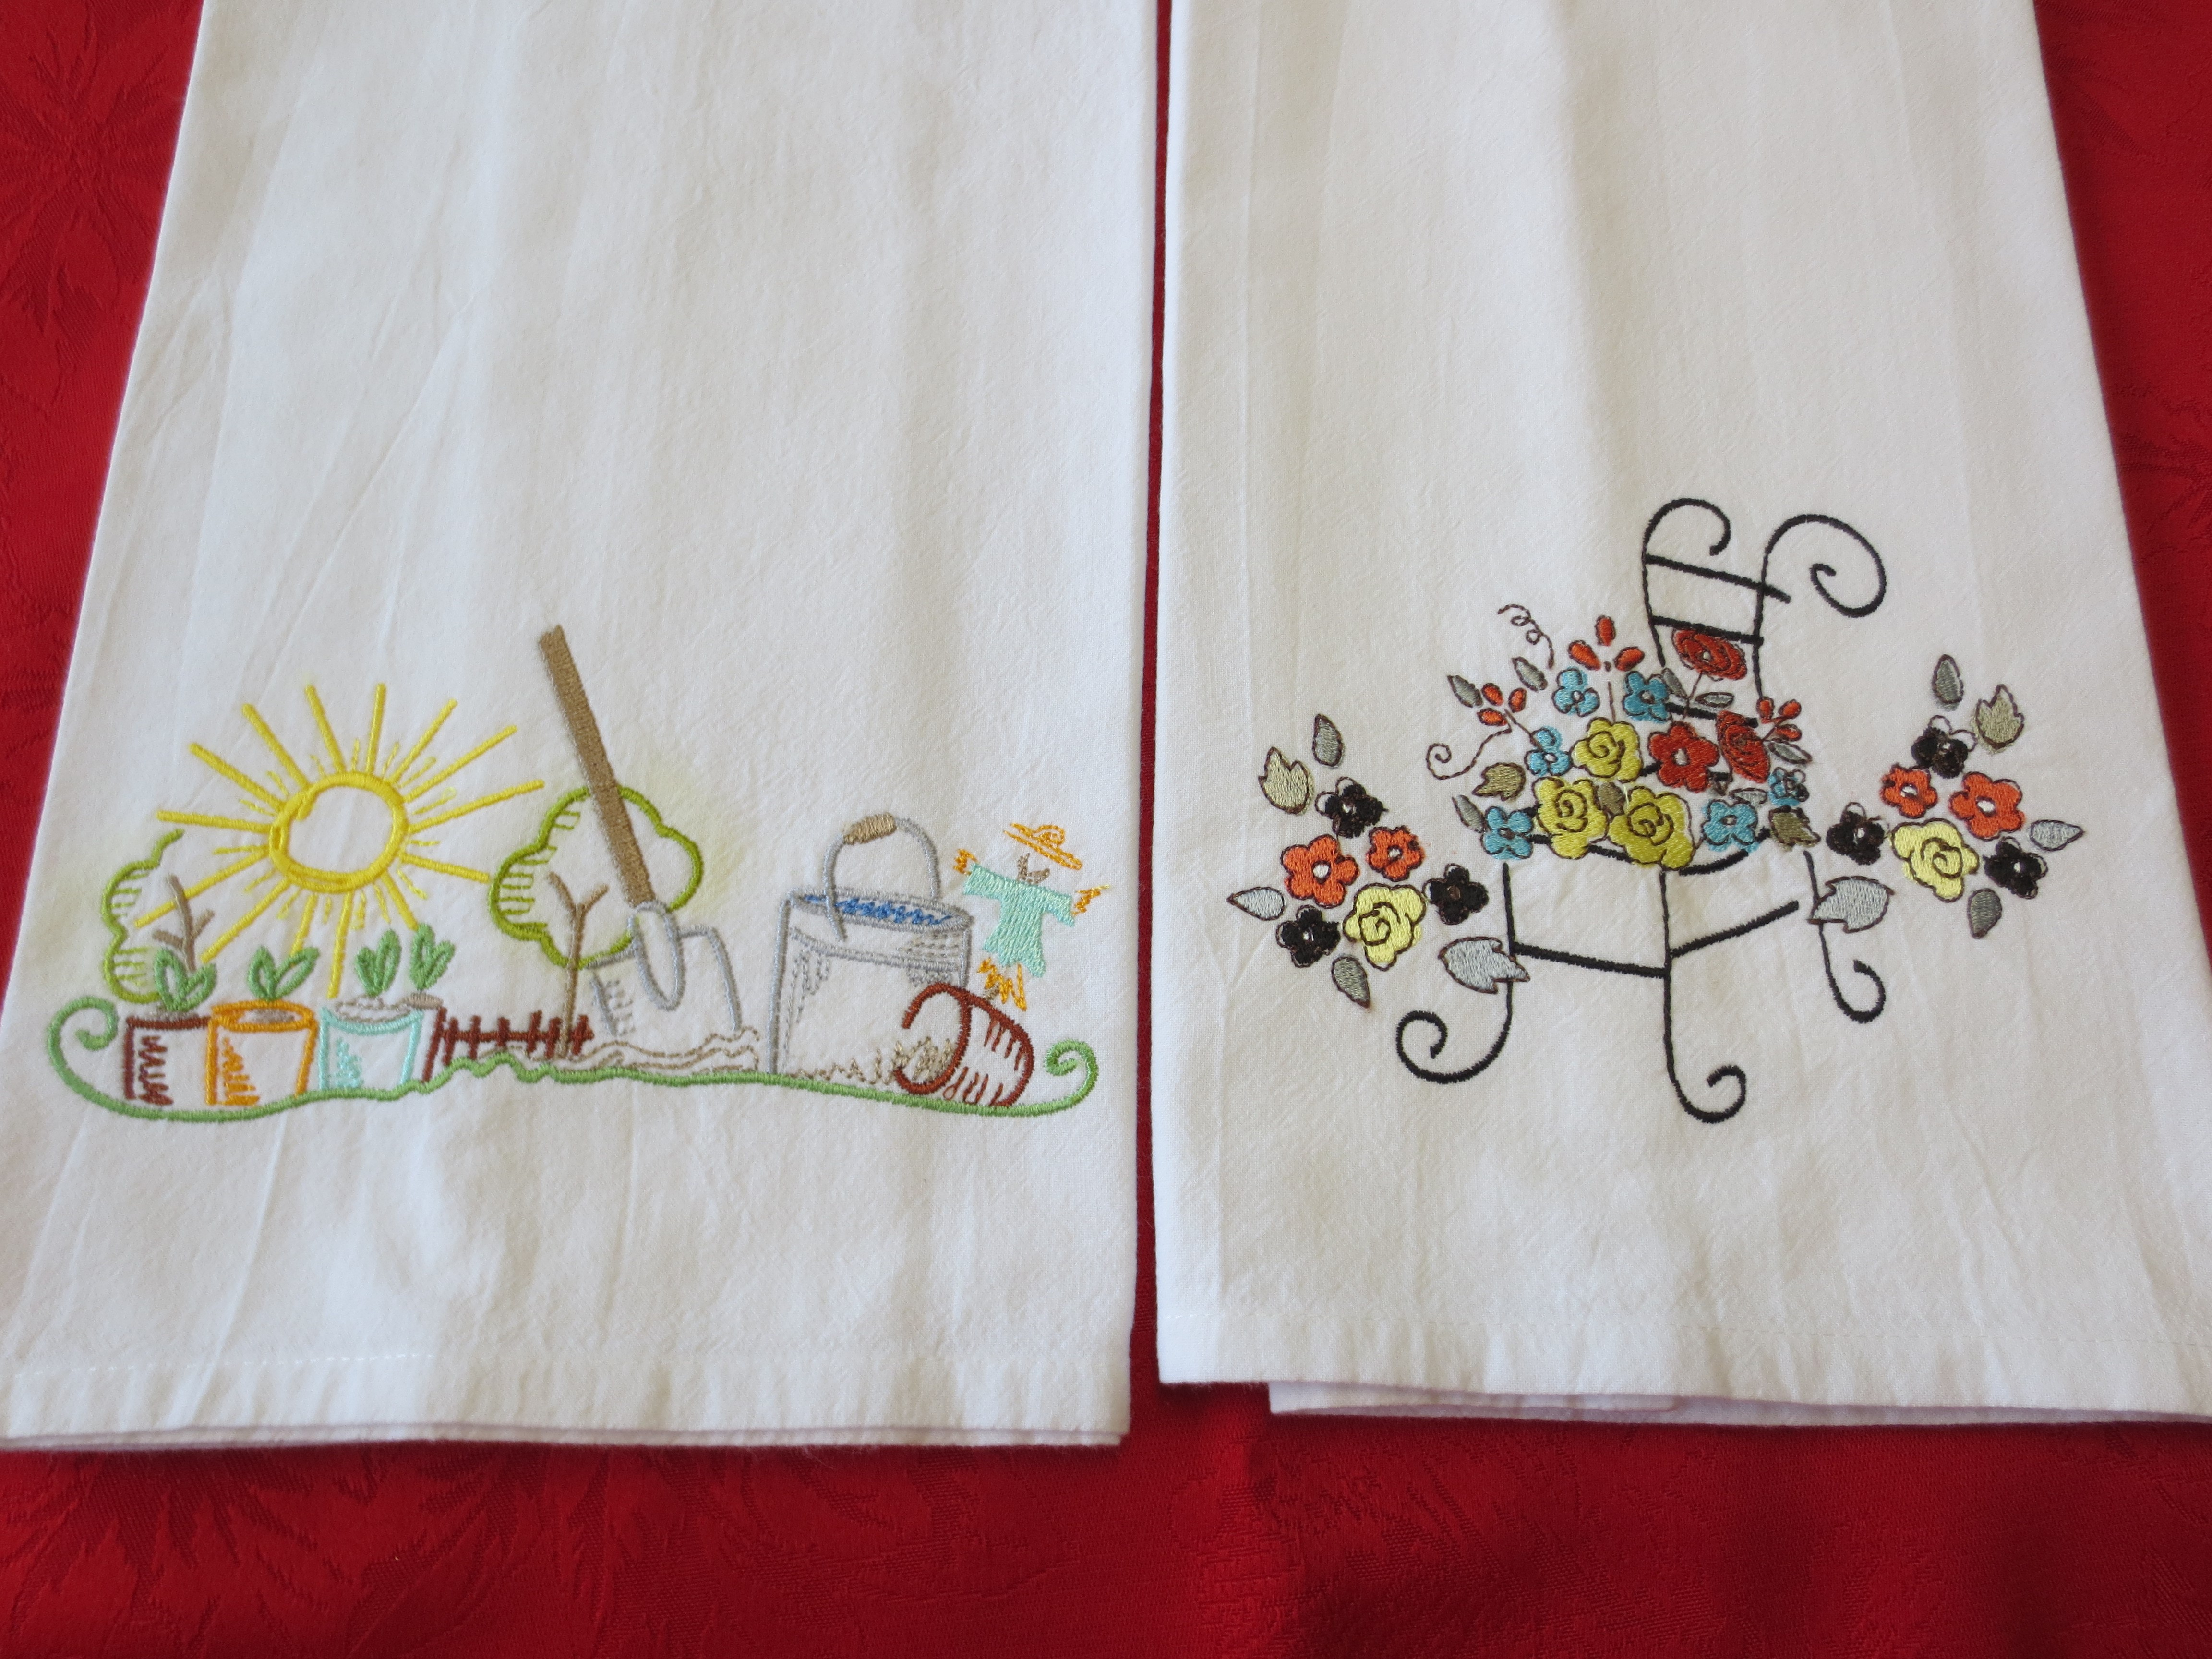 Machine Embroidery Designs For Kitchen Towels - Towel Image JardImage.co